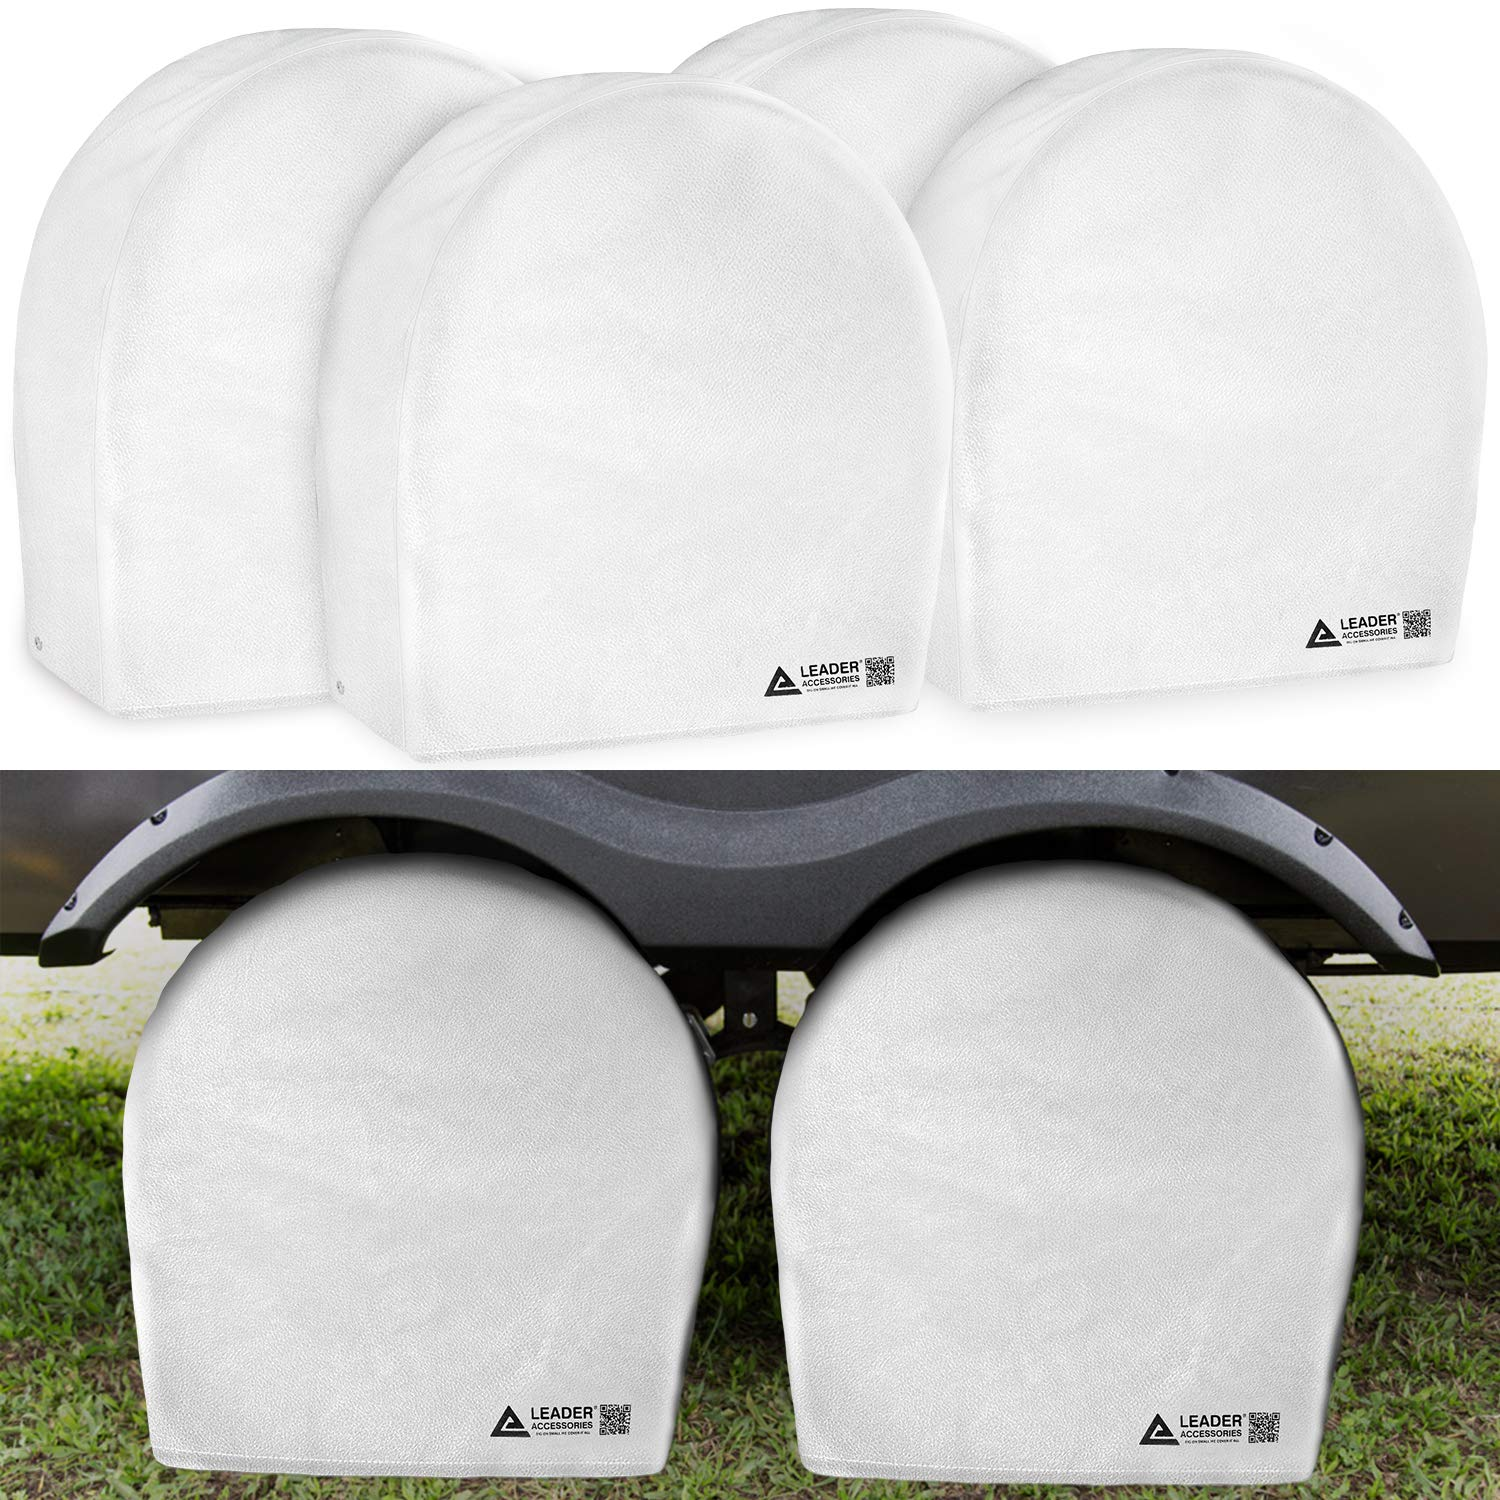 Leader Accessories Tire Covers (4 Pack) Heavy Duty Waterproof Tire Cover Wheel Covers for RV Wheel Travel Trailer Camper Car Truck Jeep SUV Fits 36''-39'' Diameter Tires from Side to Side,White by Leader Accessories